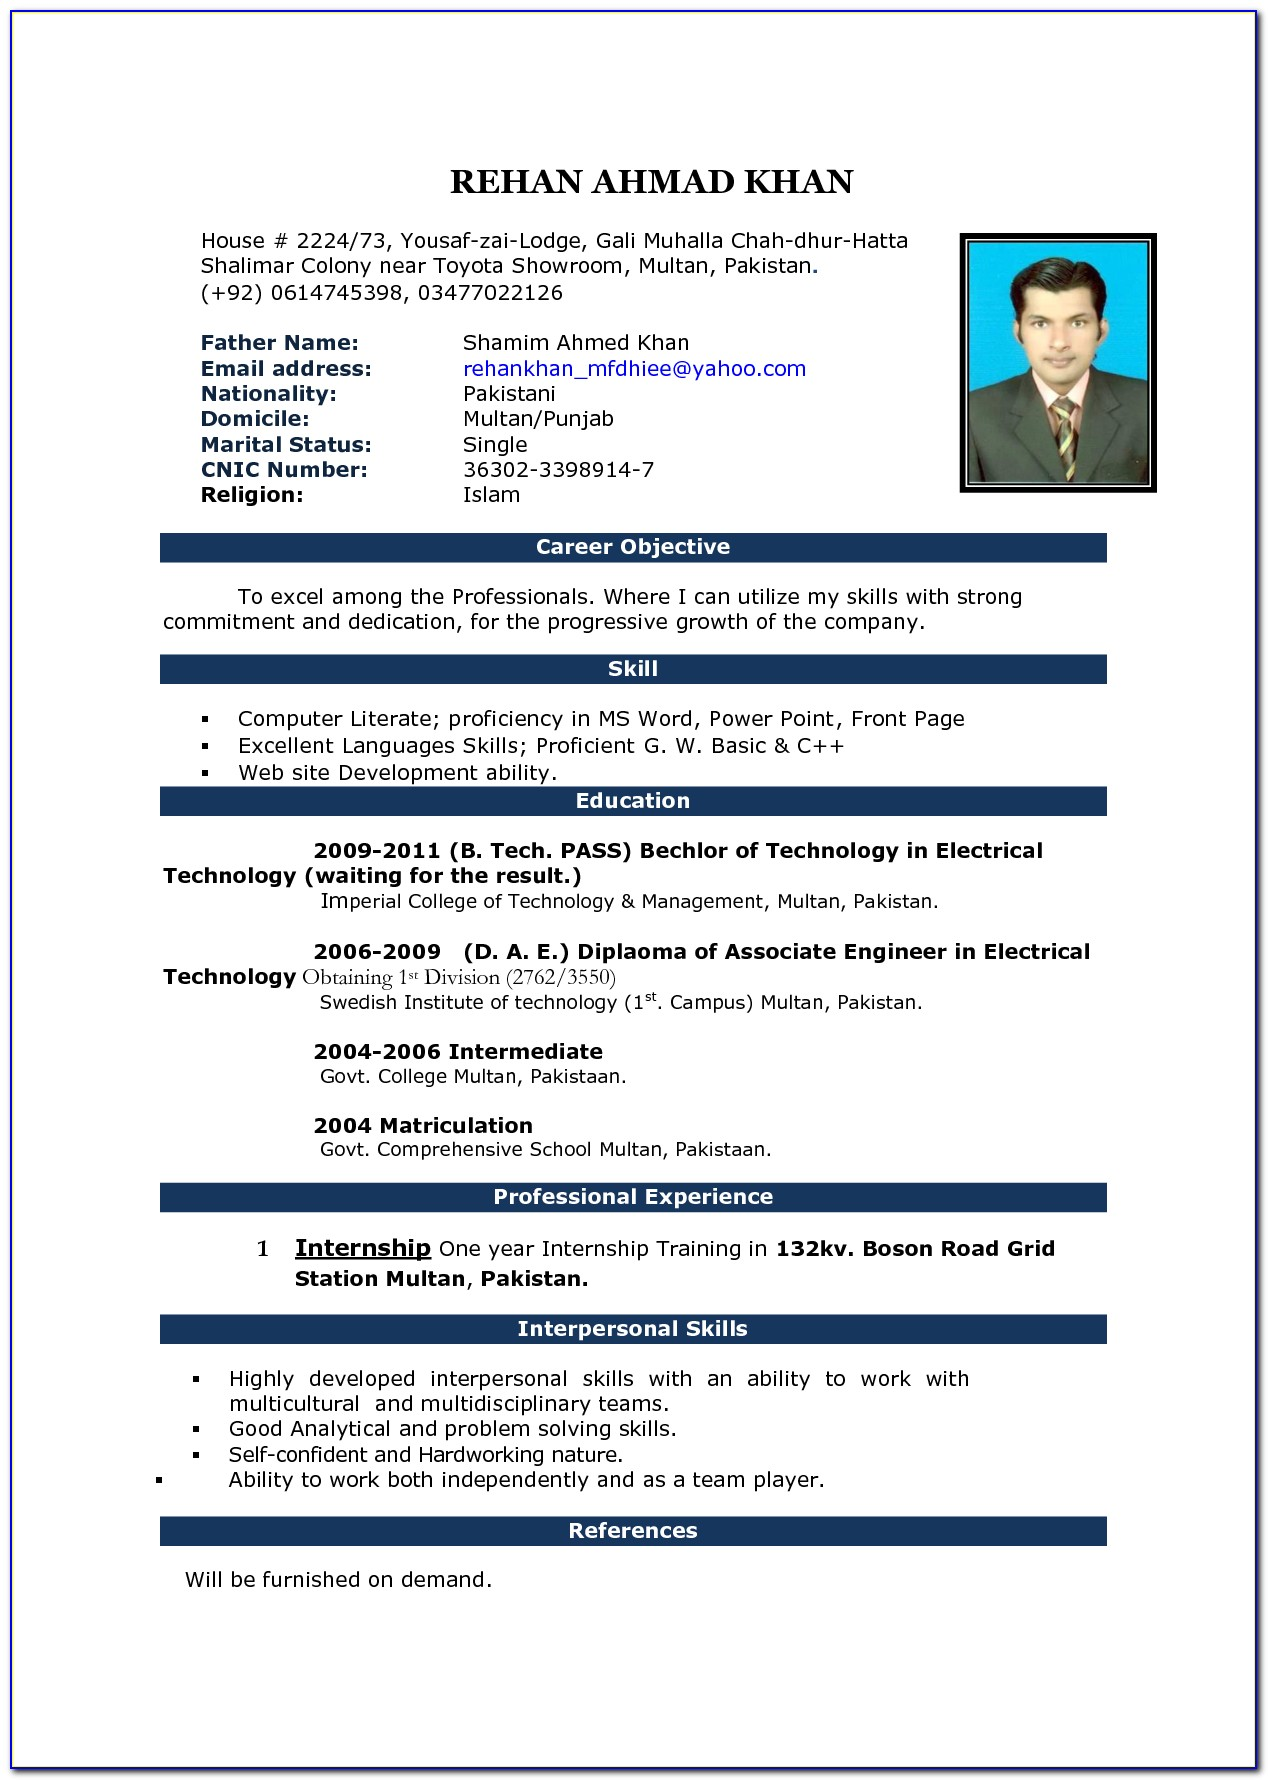 How To Find Resume Format On Microsoft Word 2007